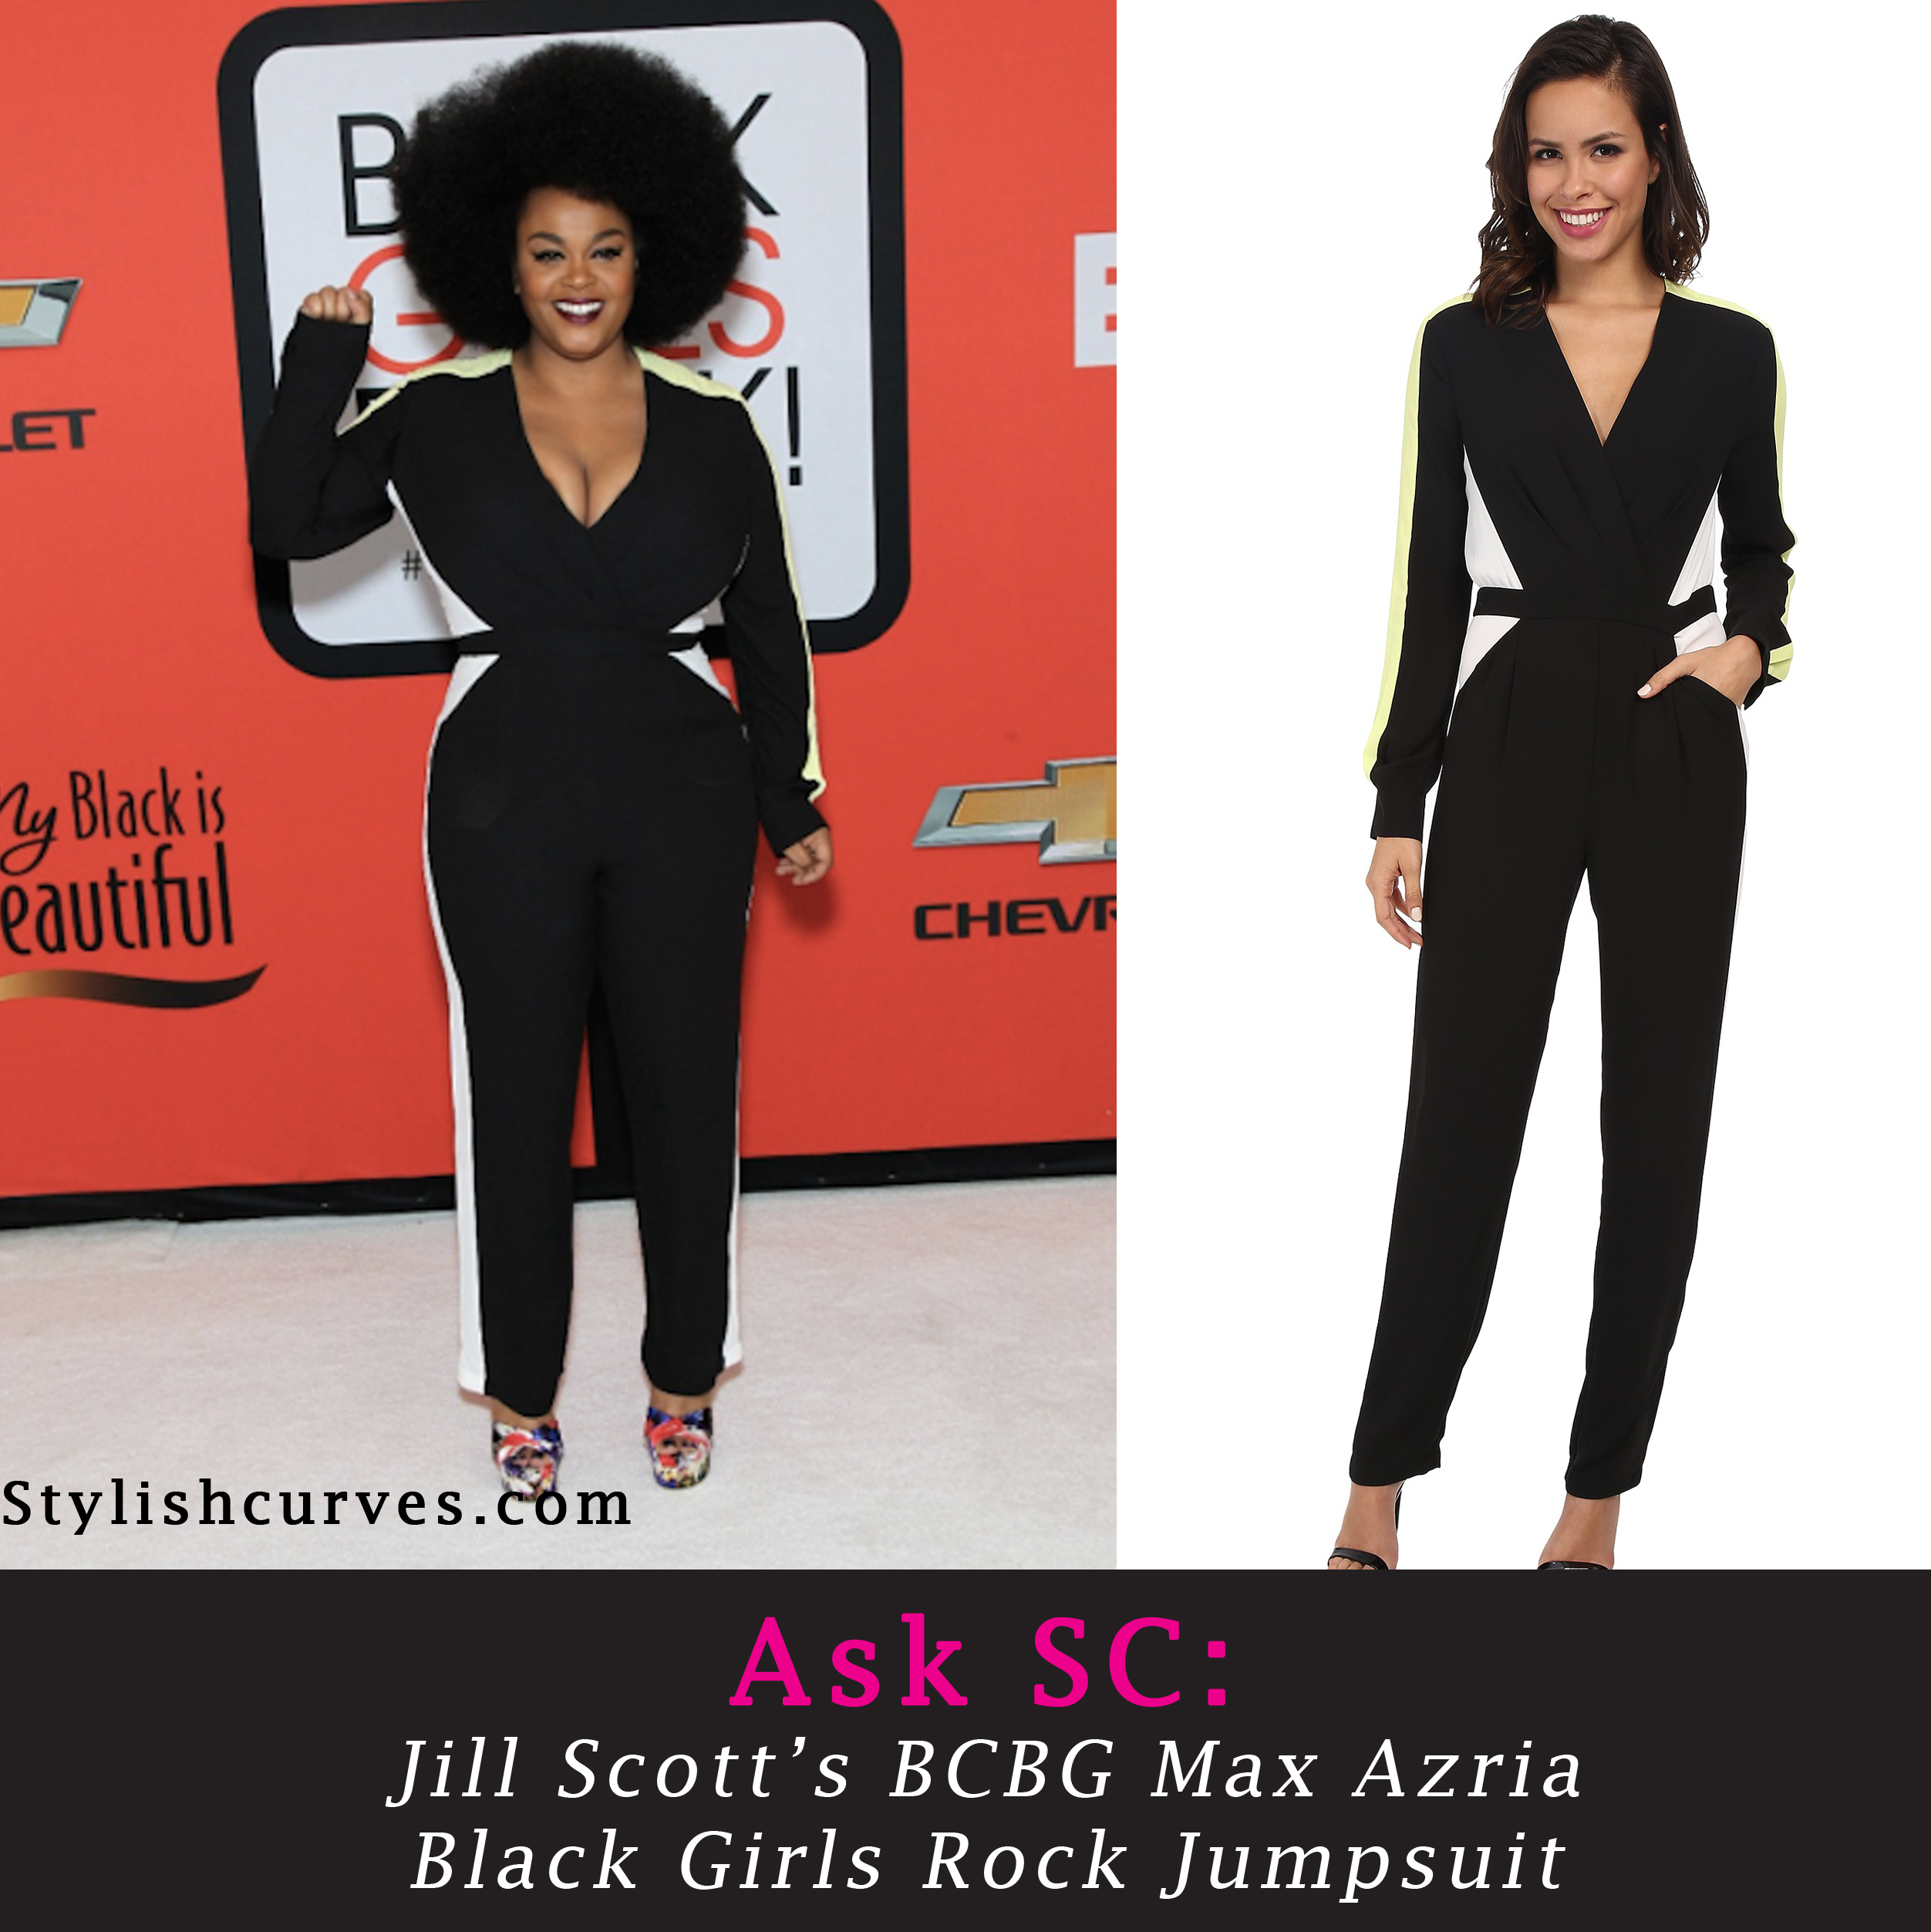 Ask SC: We Found Jill Scott's BCBG Black Girl's Rock Jumpsuit